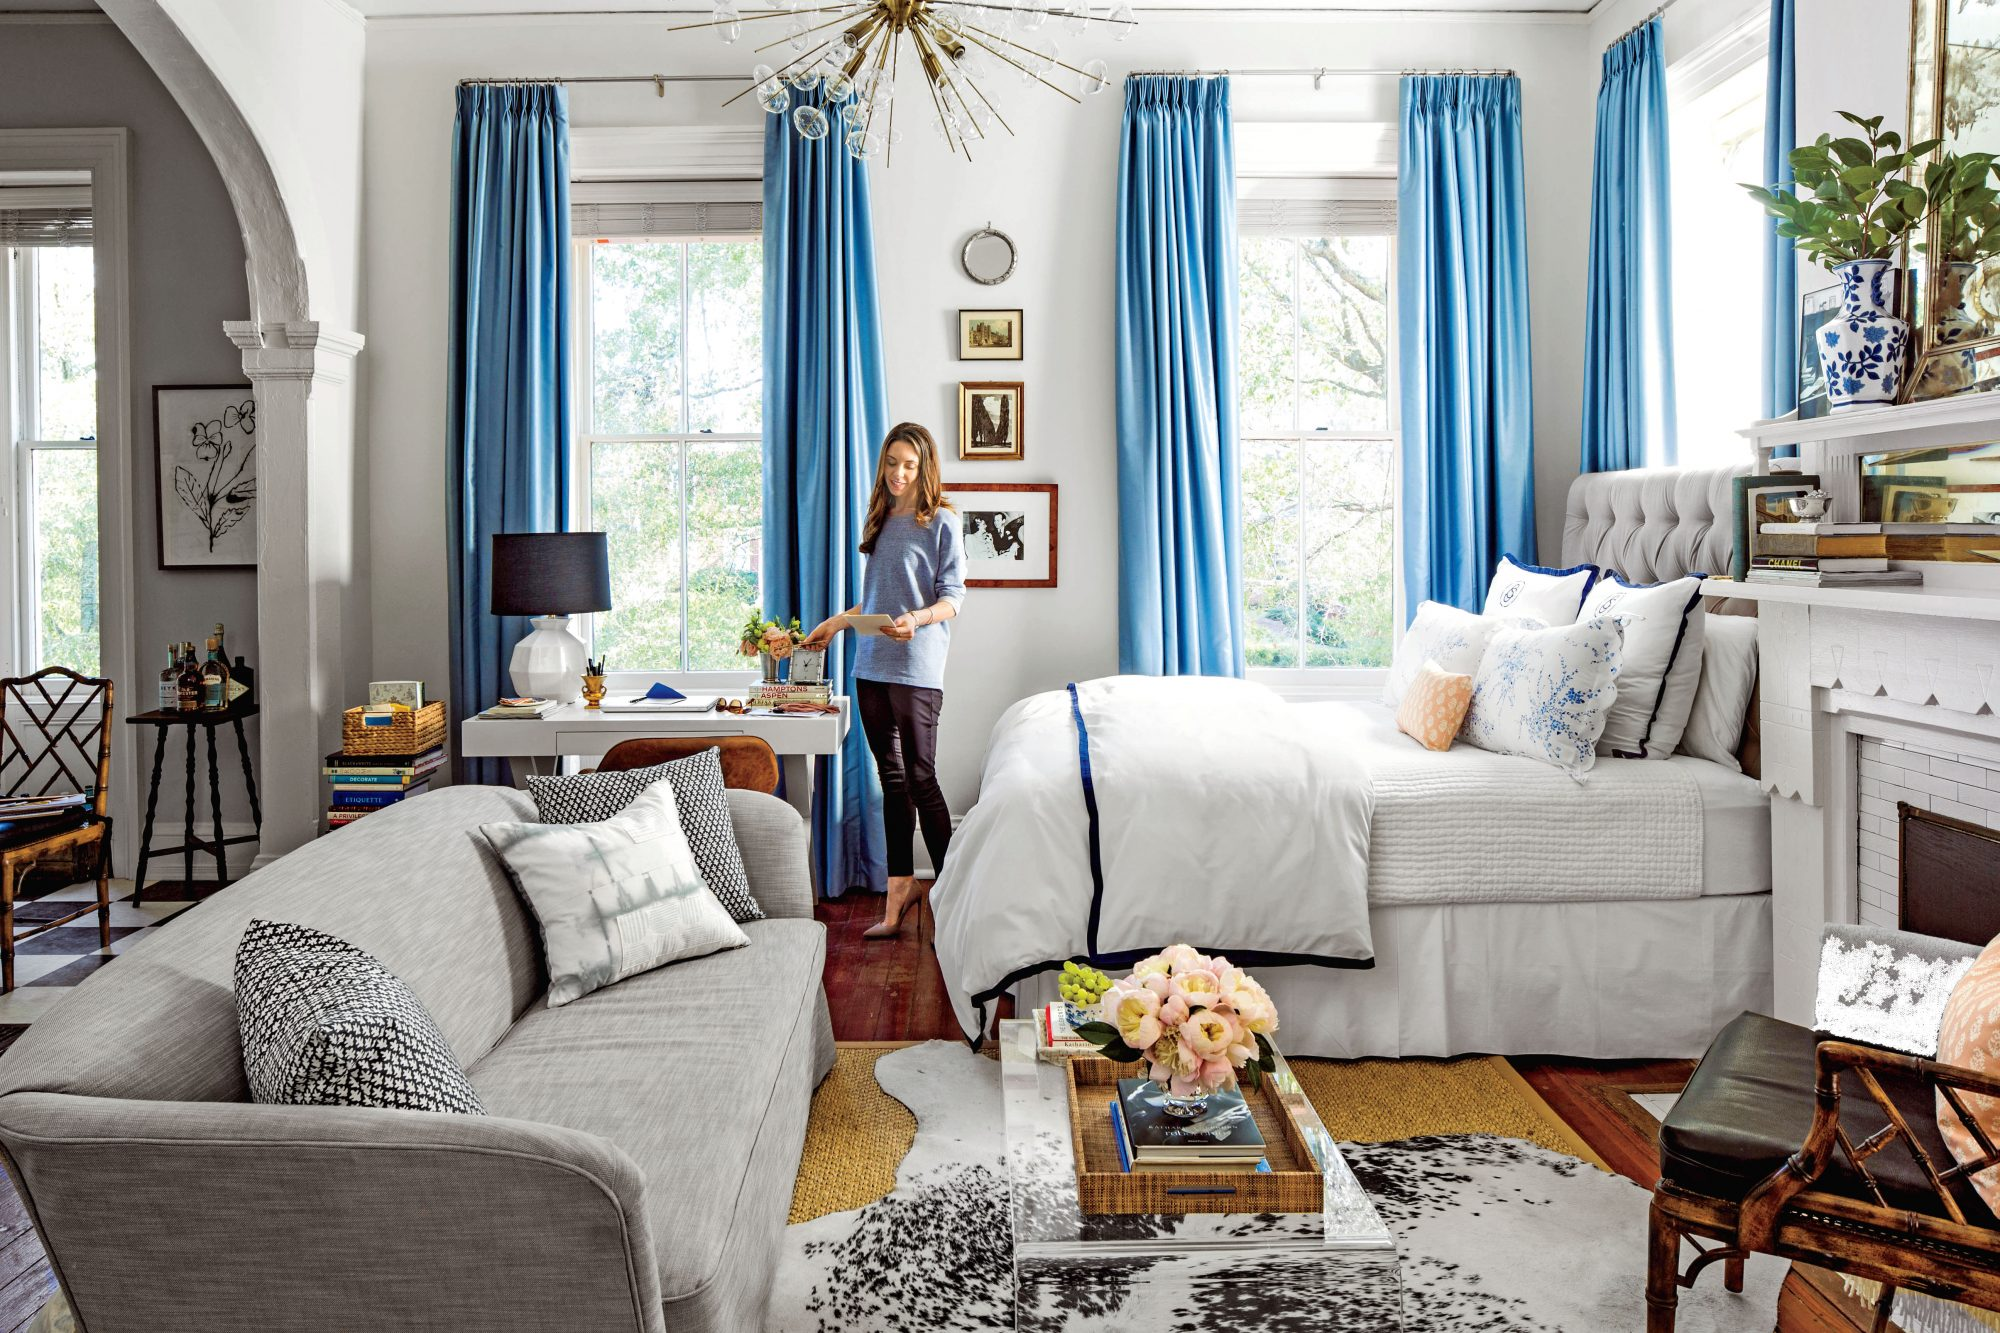 Big Ideas for Small-Space Decorating